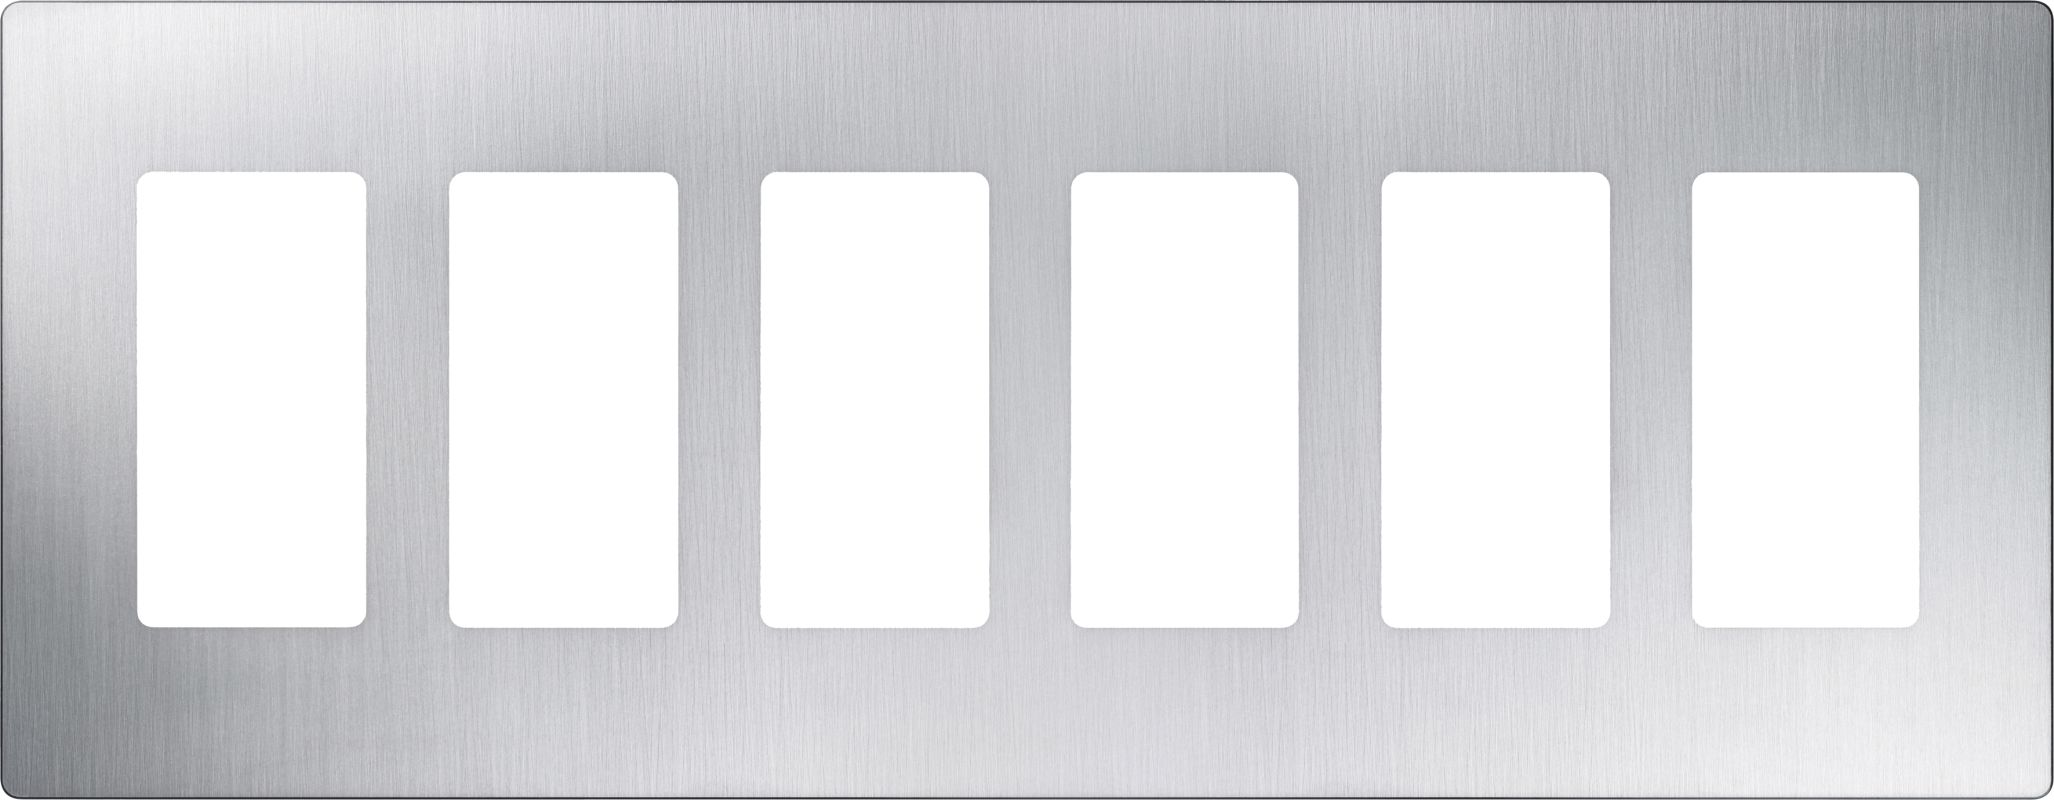 Lutron CW-6 Claro Six Gang Designer Wall Plate Stainless Steel Wall Sale $69.66 ITEM: bci1850021 ID#:CW-6-SS UPC: 27557223294 :